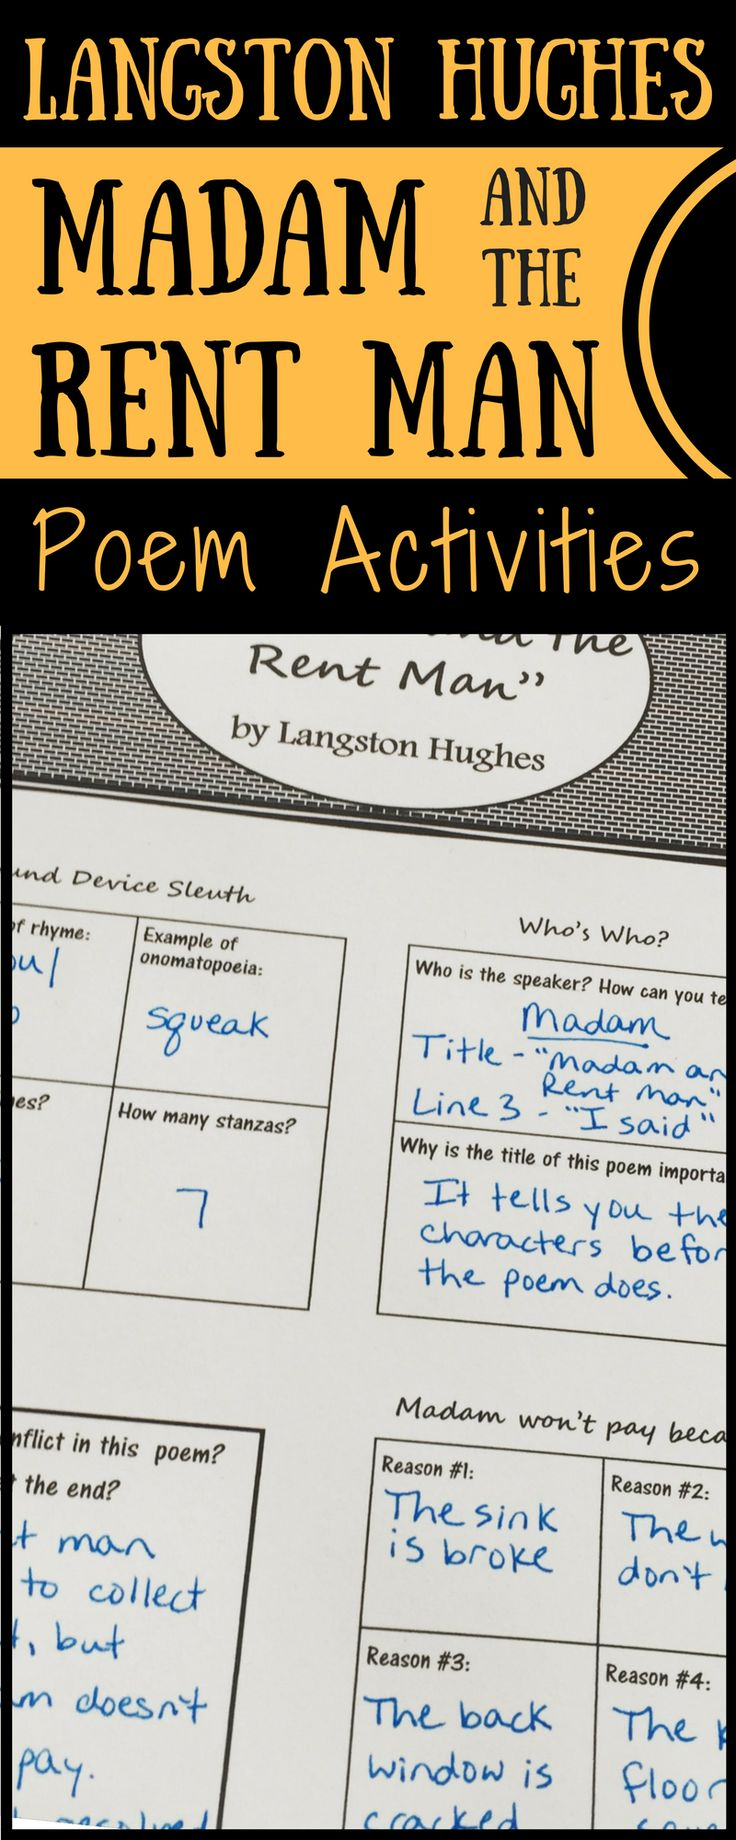 """Madam and the Rent Man"" Poem Activities - Use this humorous Langston Hughes poem to teach character, theme, and elements of poetry! These poetry analysis pages cover sound devices and figurative language as well as character traits, conflict, cause and effect, determining theme, an more poetry reading skills."